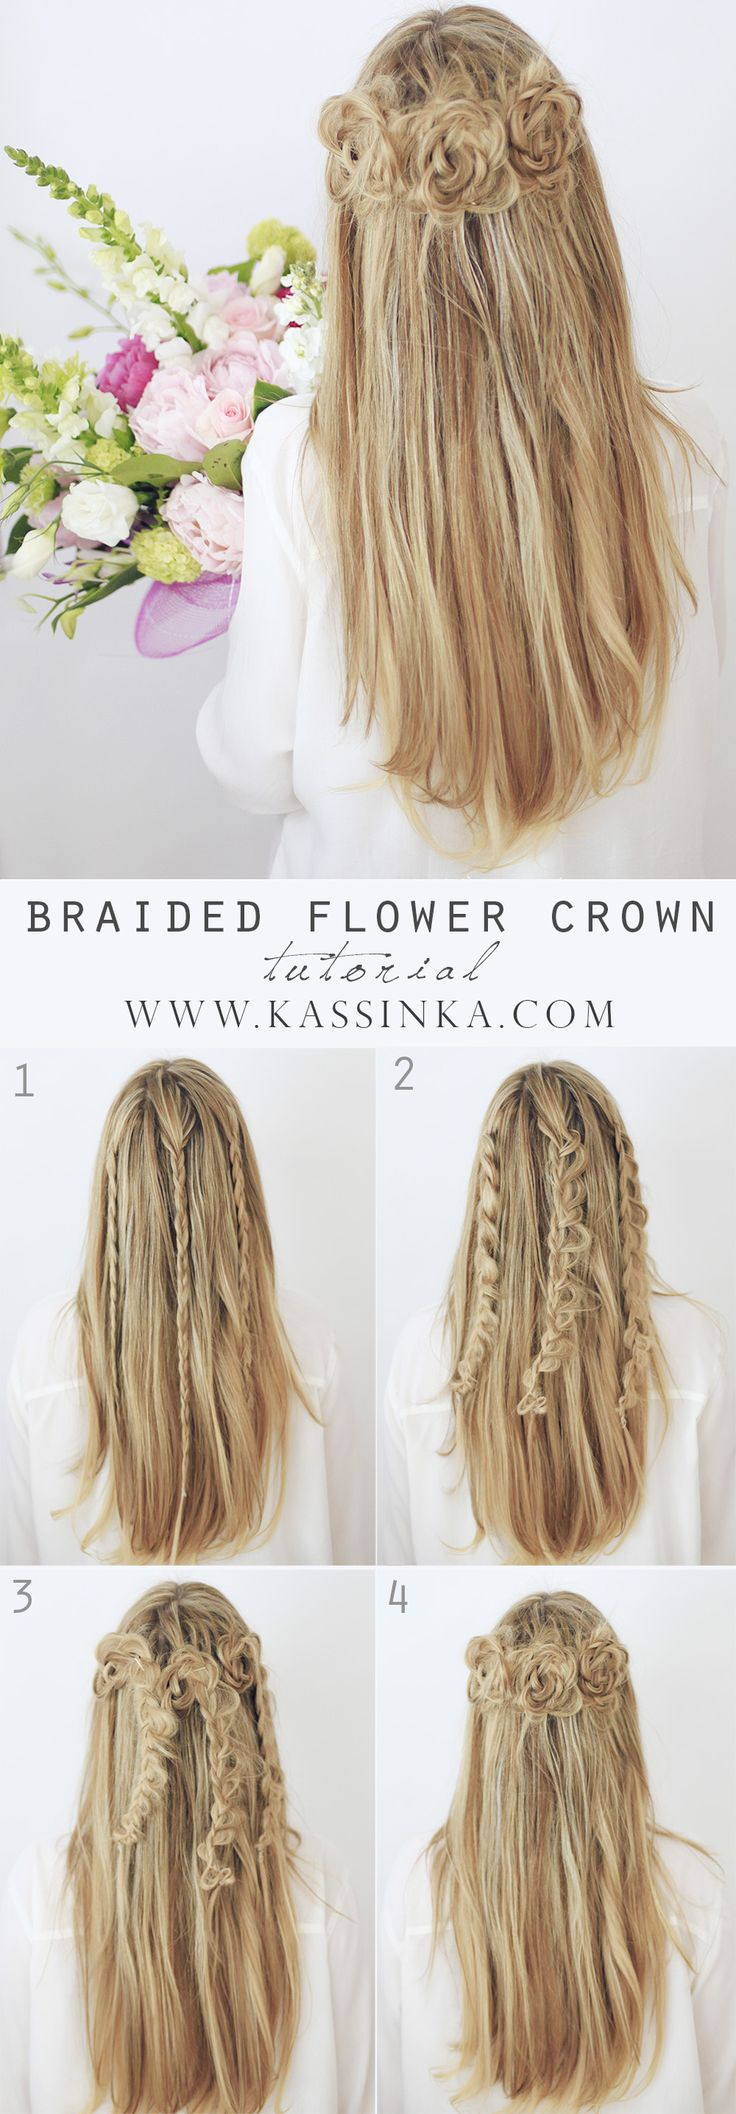 braided flower crown hair tutorial fancy half up hairstyles party wedding hairstyle